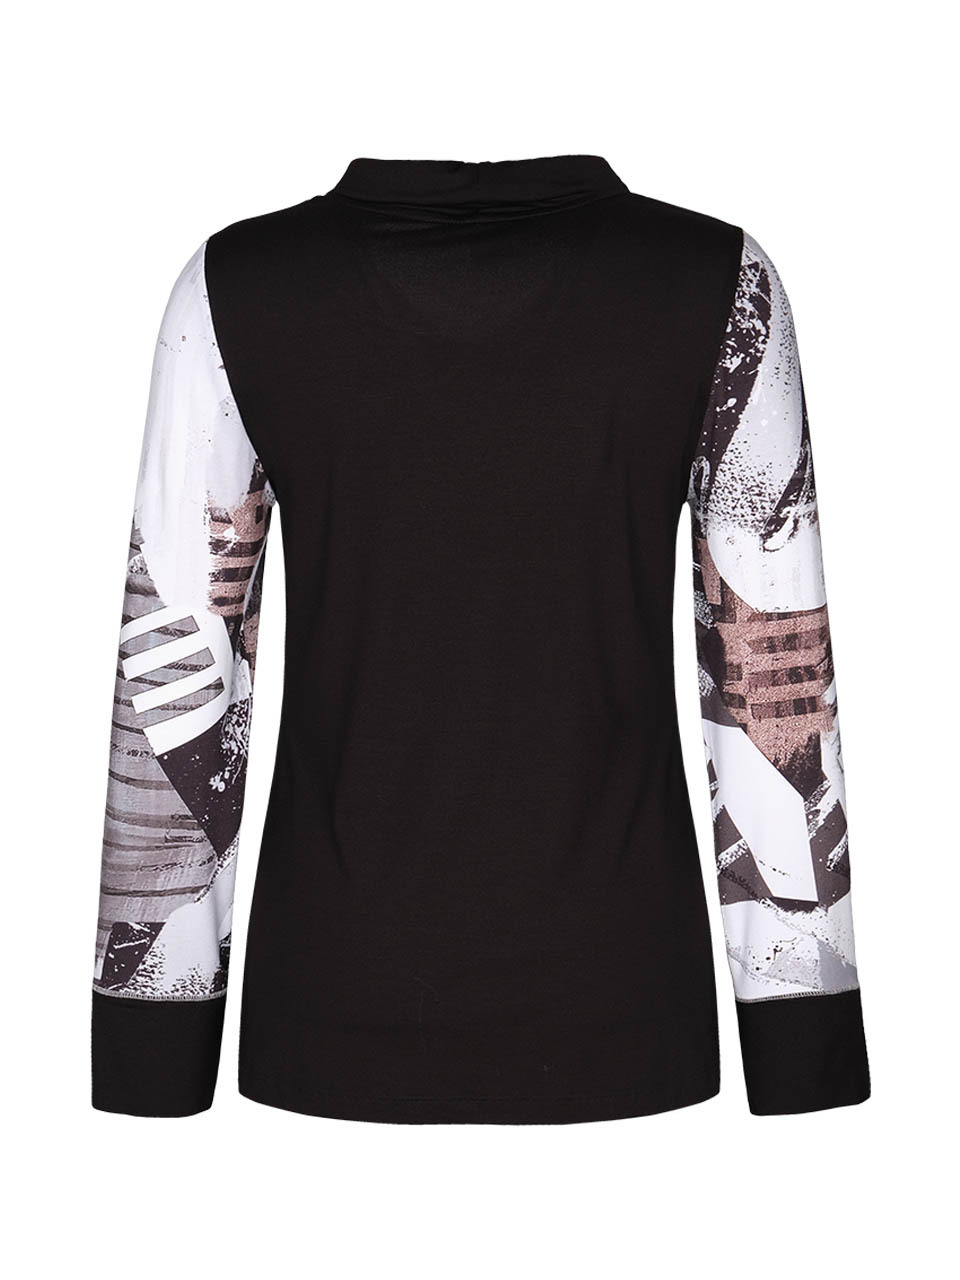 Simply Art Dolcezza: A Splash of Cacao Abstract Art Top (Few Left!)